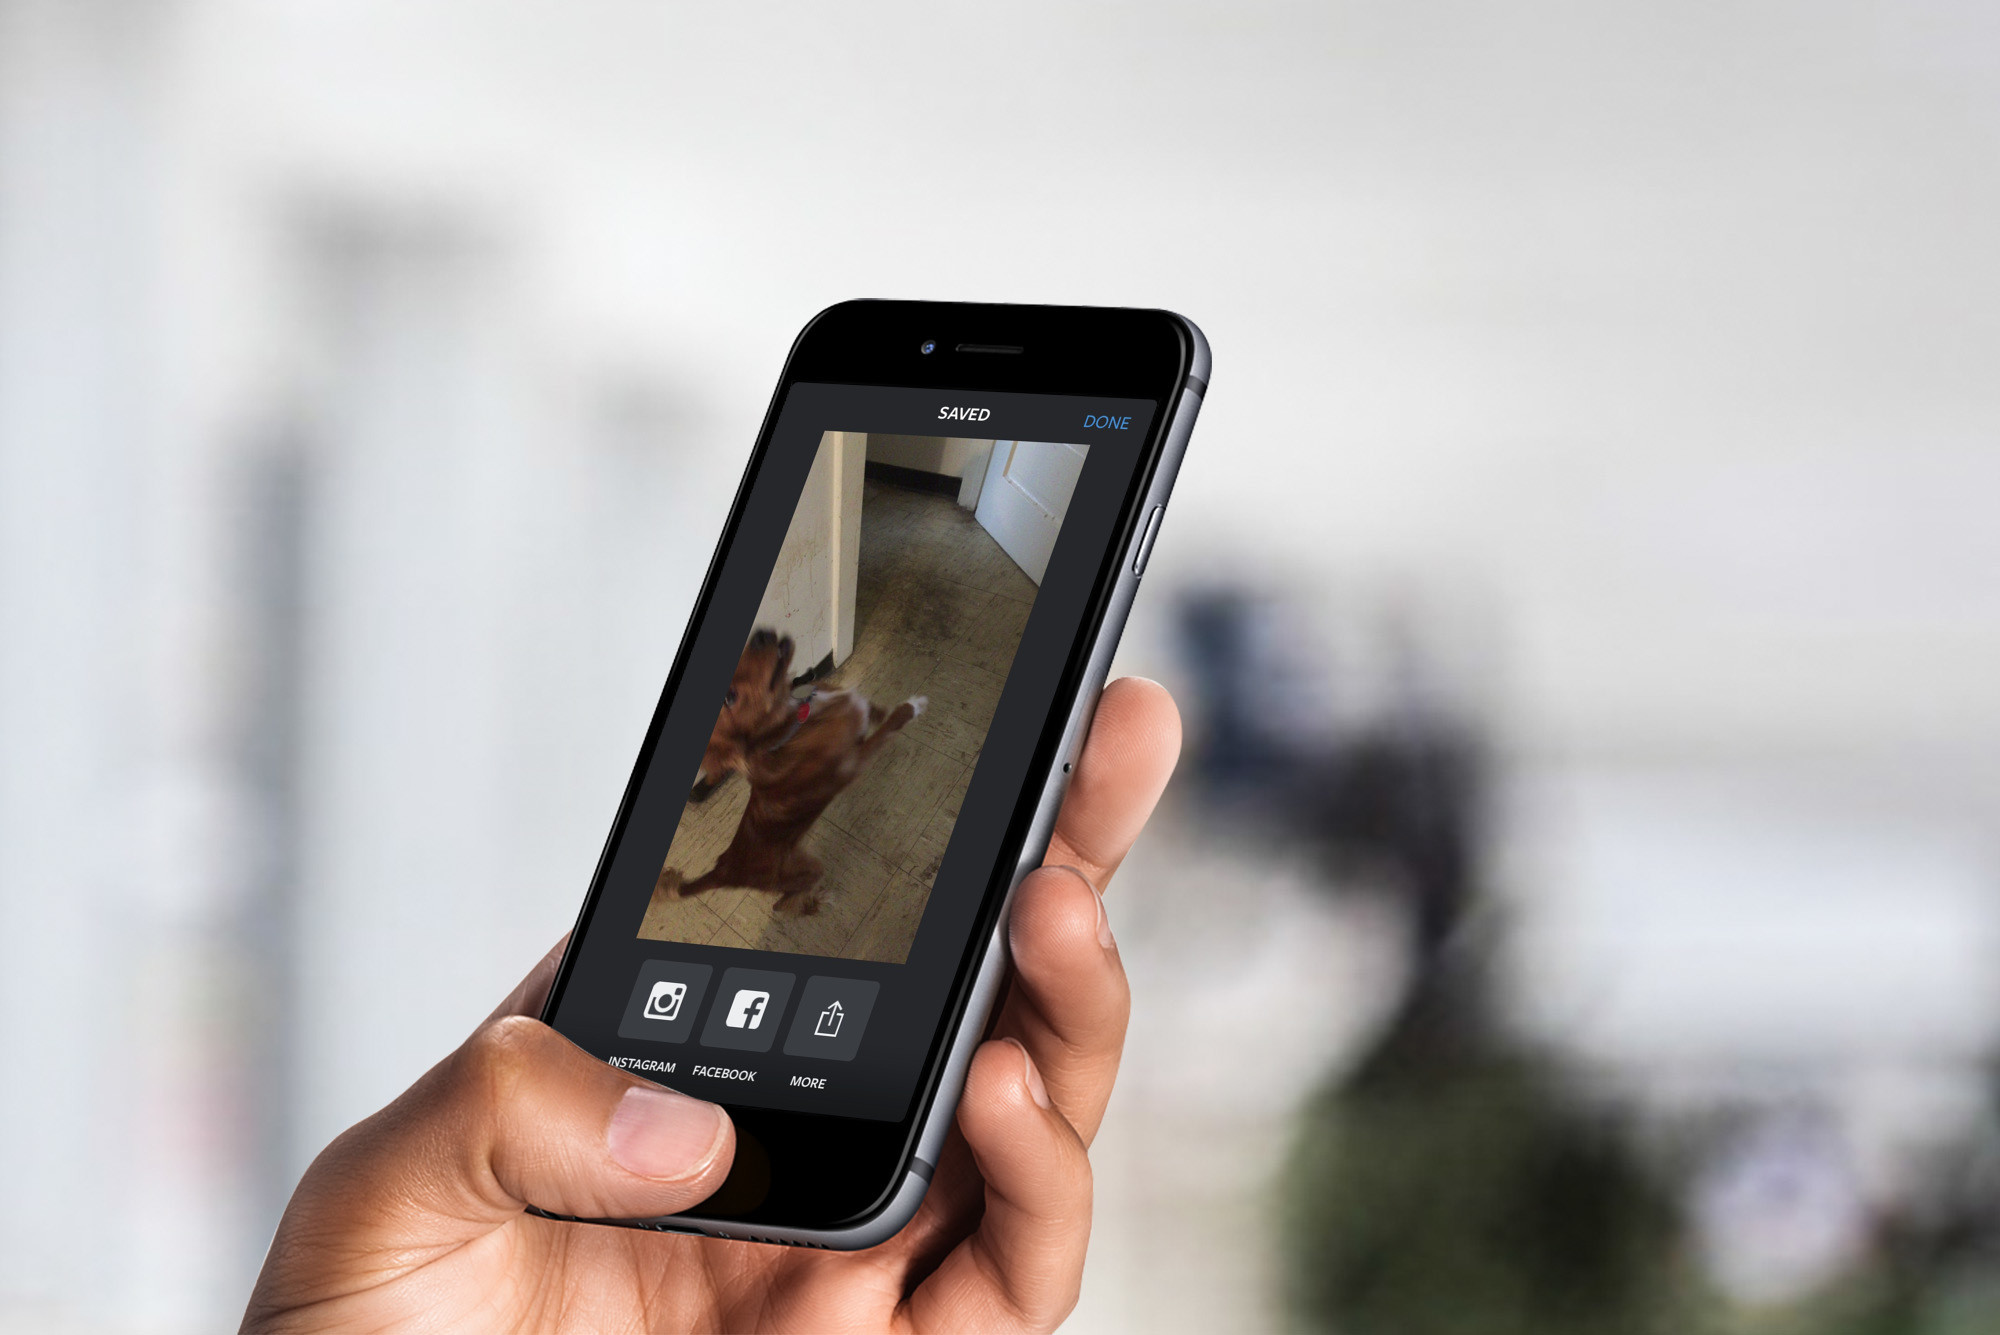 Post videos to your Instagram feed again with Boomerang